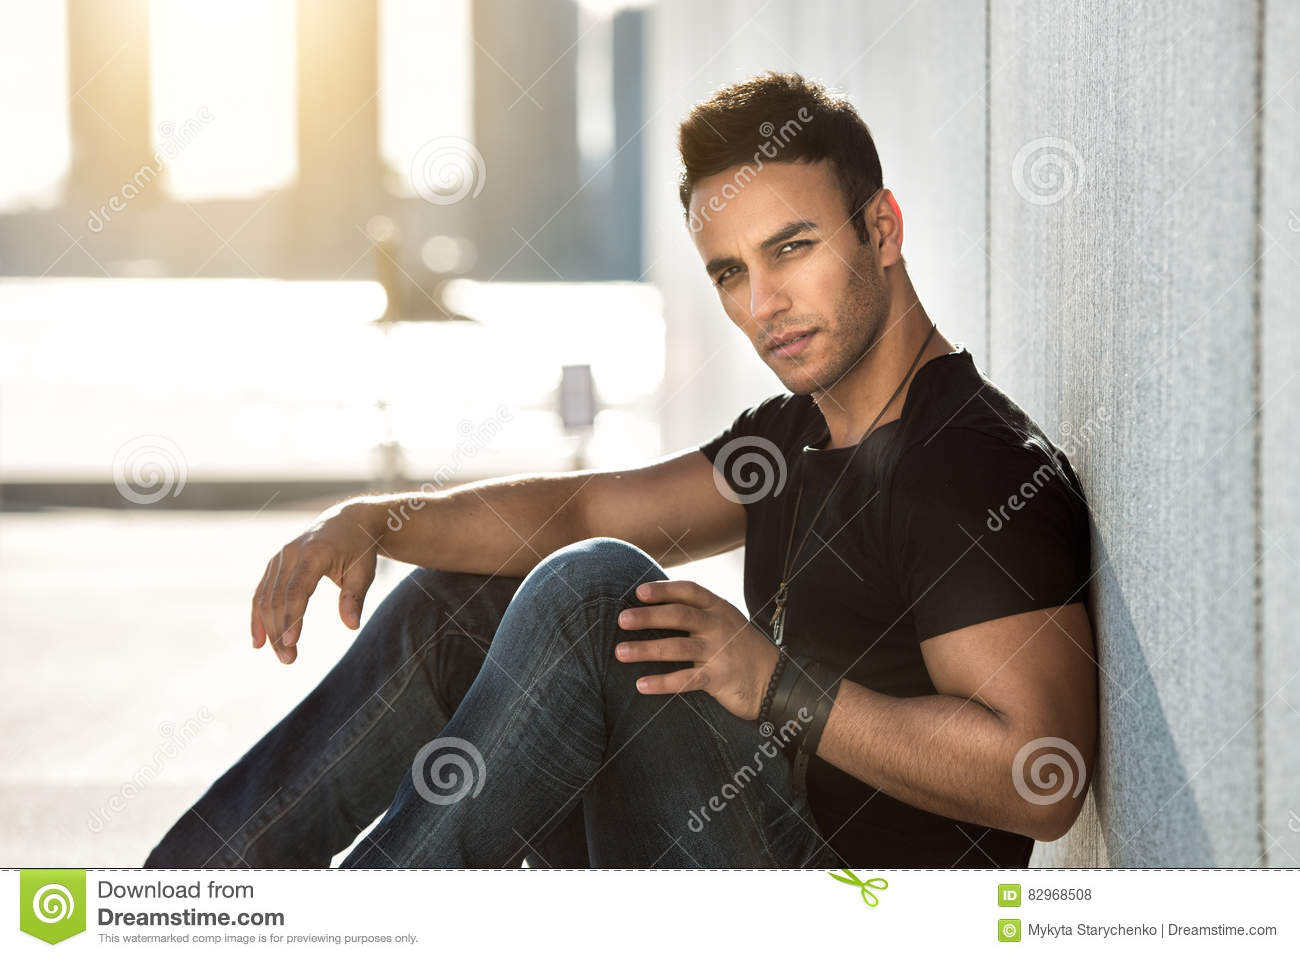 Black t shirt with dark blue jeans - Male Fashion Model Man In Black T Shirt Dark Blue Jeans And Leather Bracelet Posing Outdoors